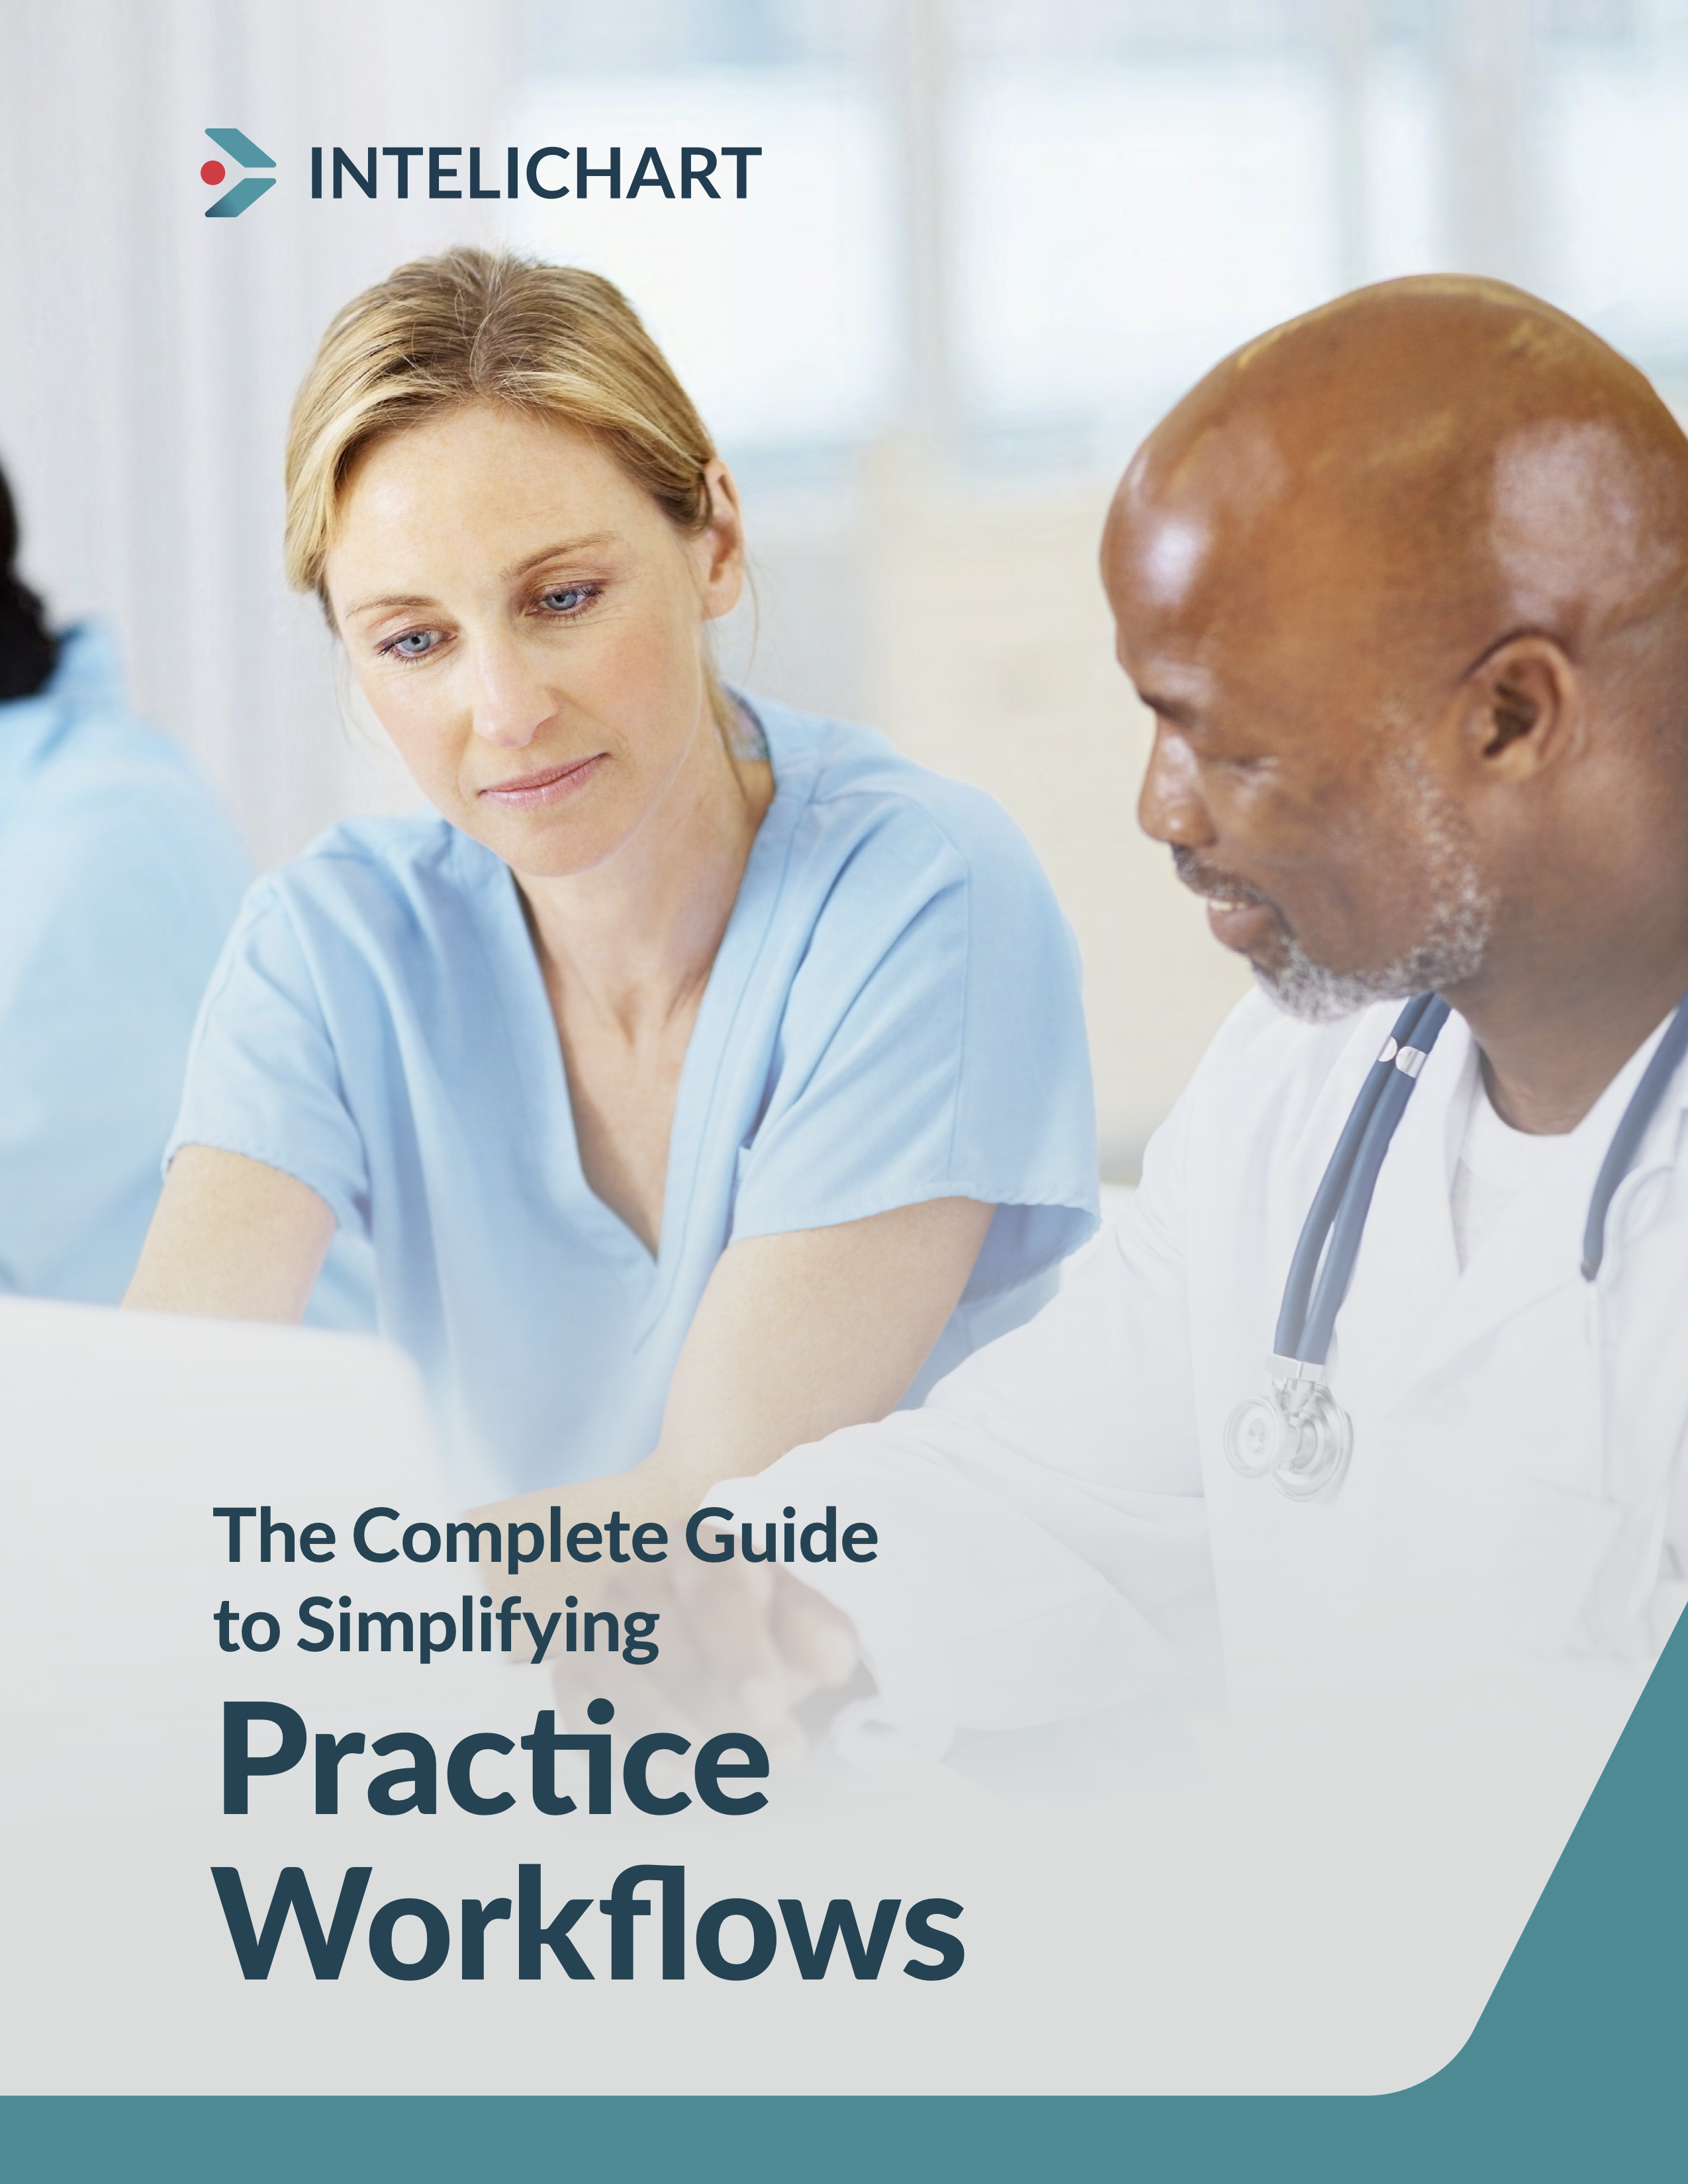 2020-08-EB-Intelichart-Guide-to-Practice-Workflows